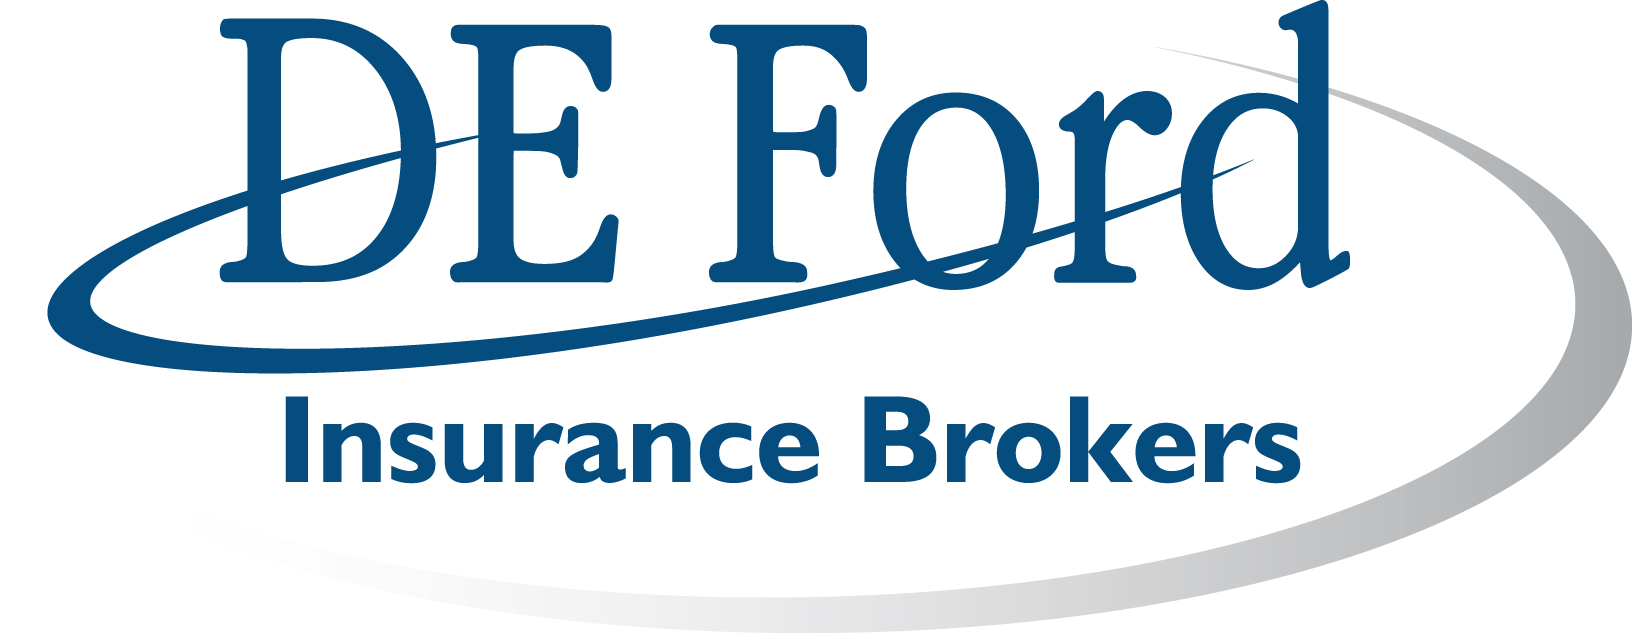 Charity Finance Group D E Ford Insurance Brokers